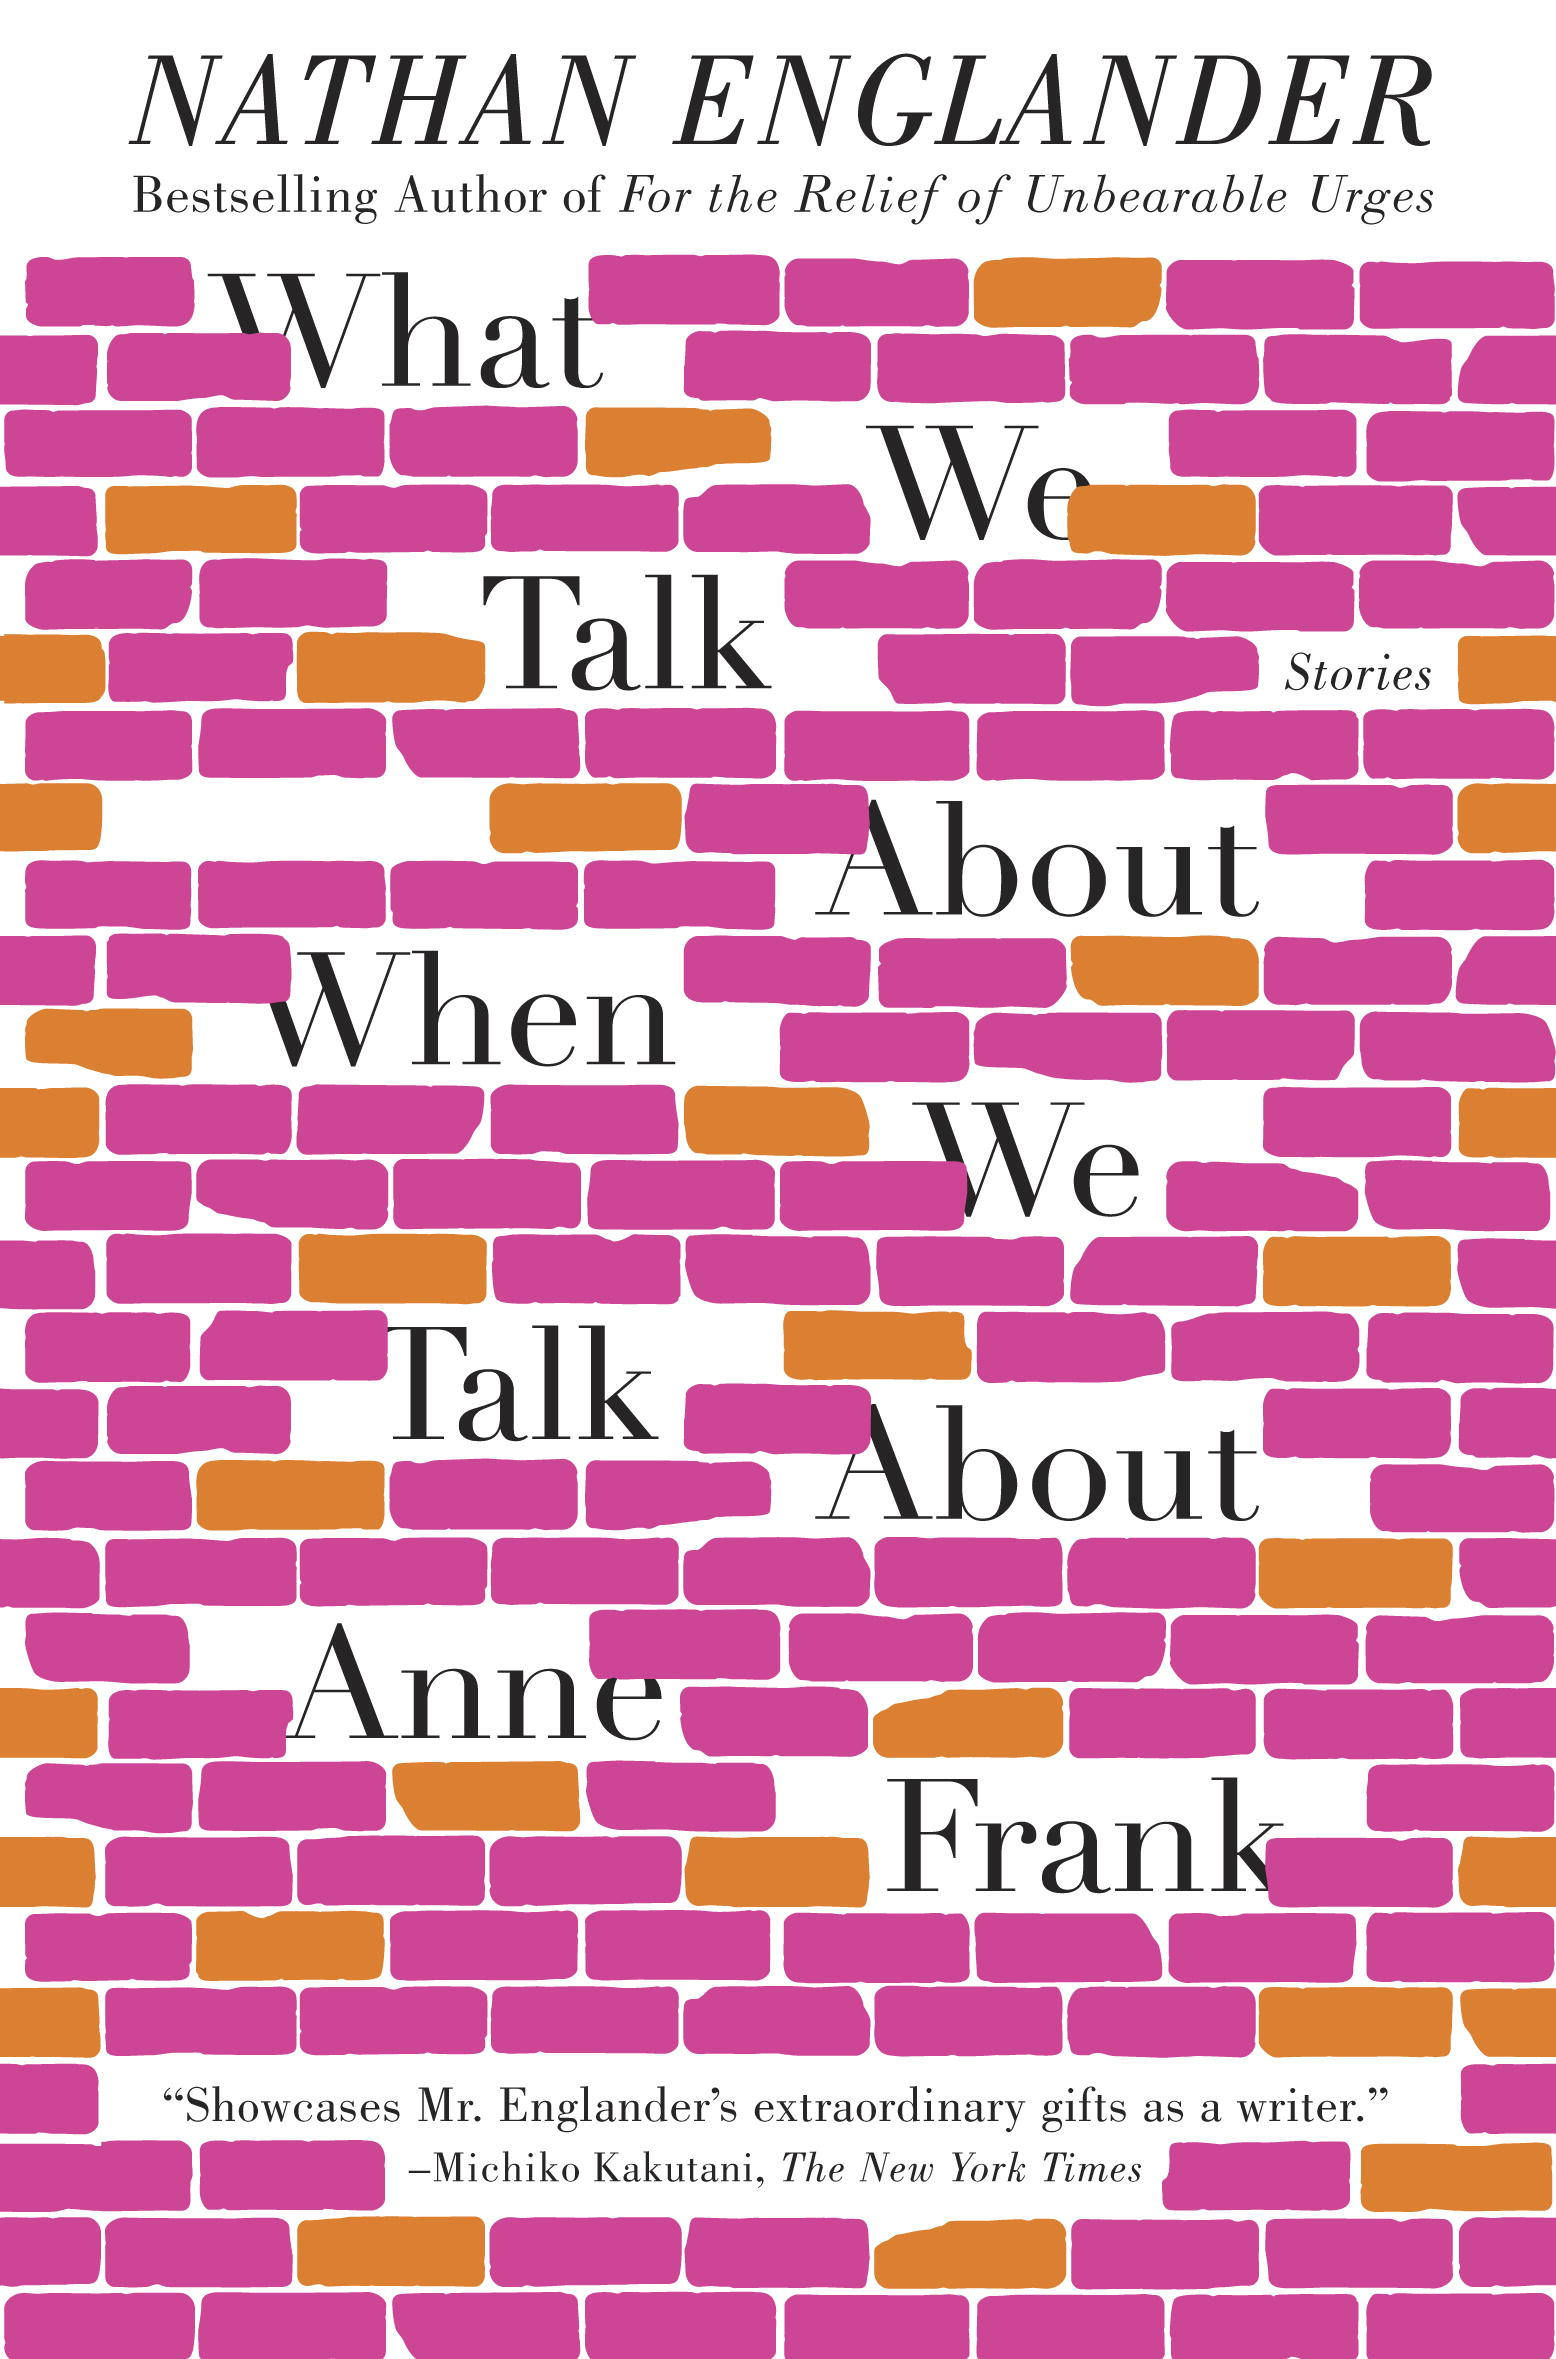 What We Talk About When We Talk About Anne Frank By: Nathan Englander